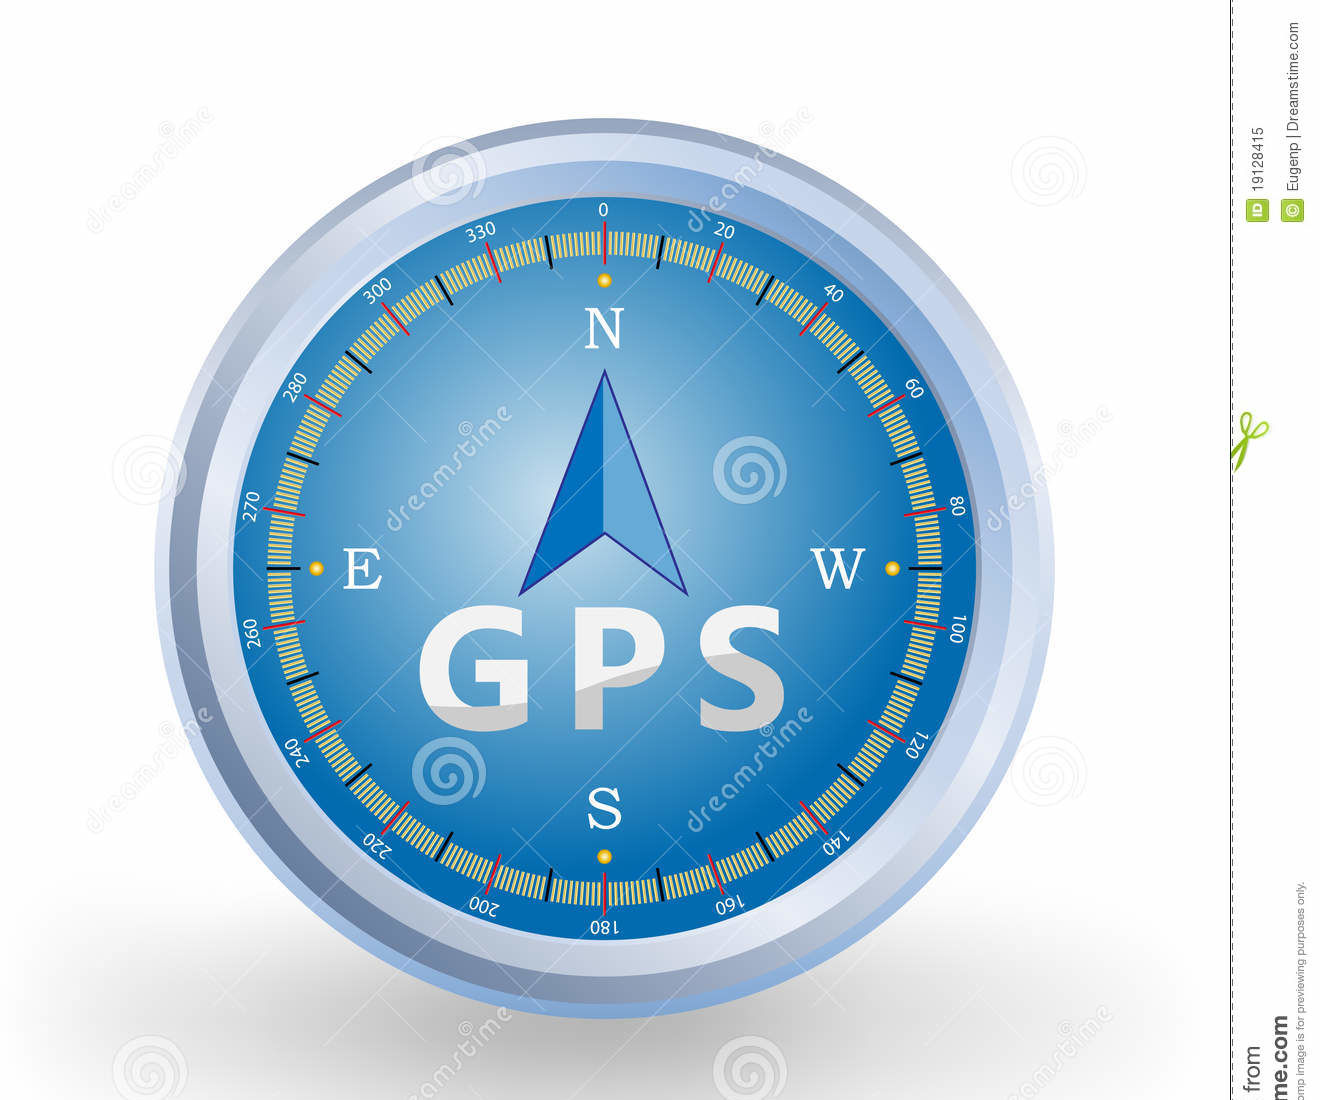 Turn on GPS Programmatically in Android 4.4 or Higher